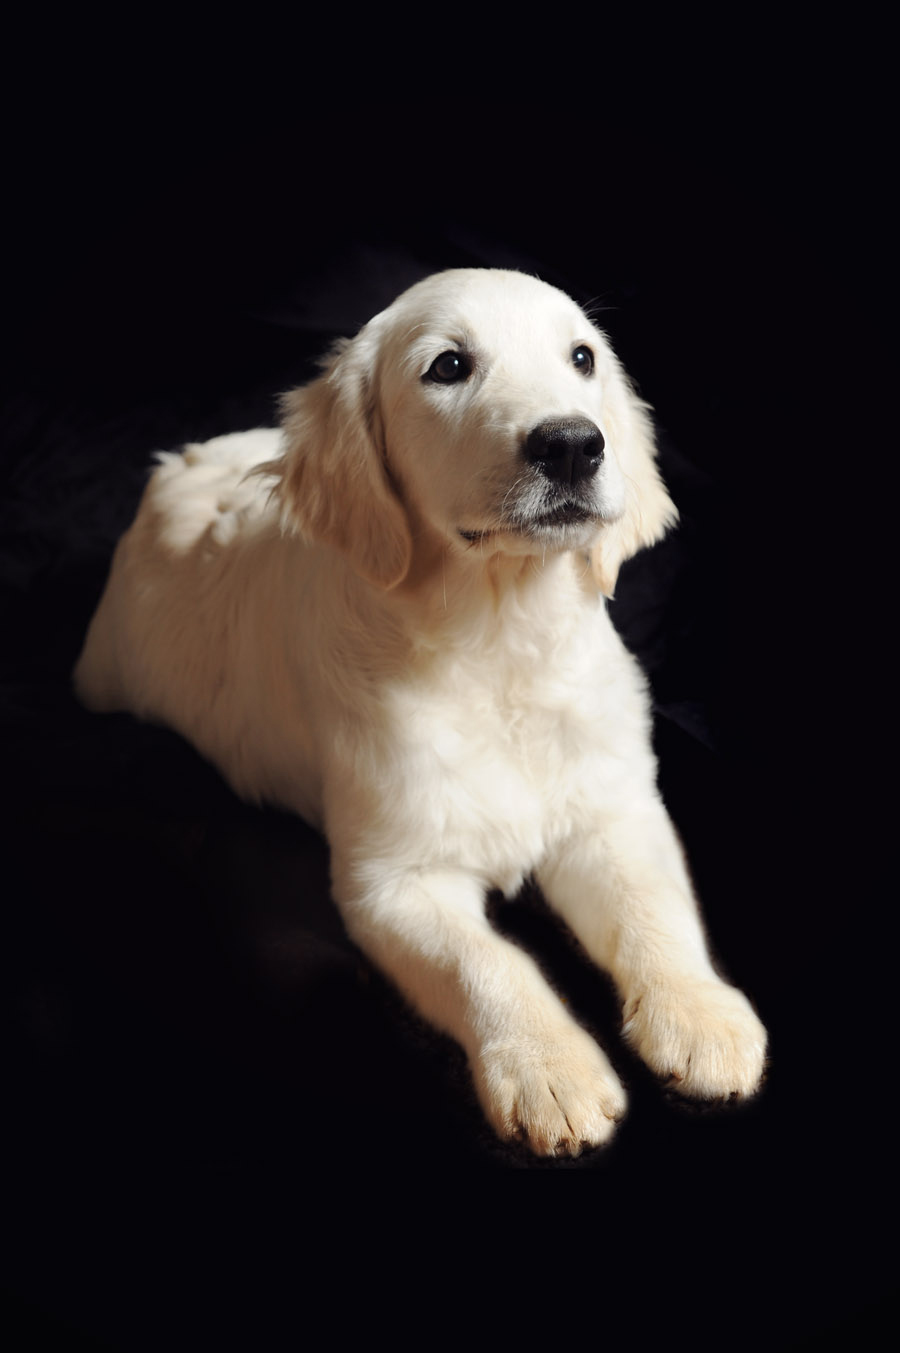 English Cream Golden Retriever at 4 months